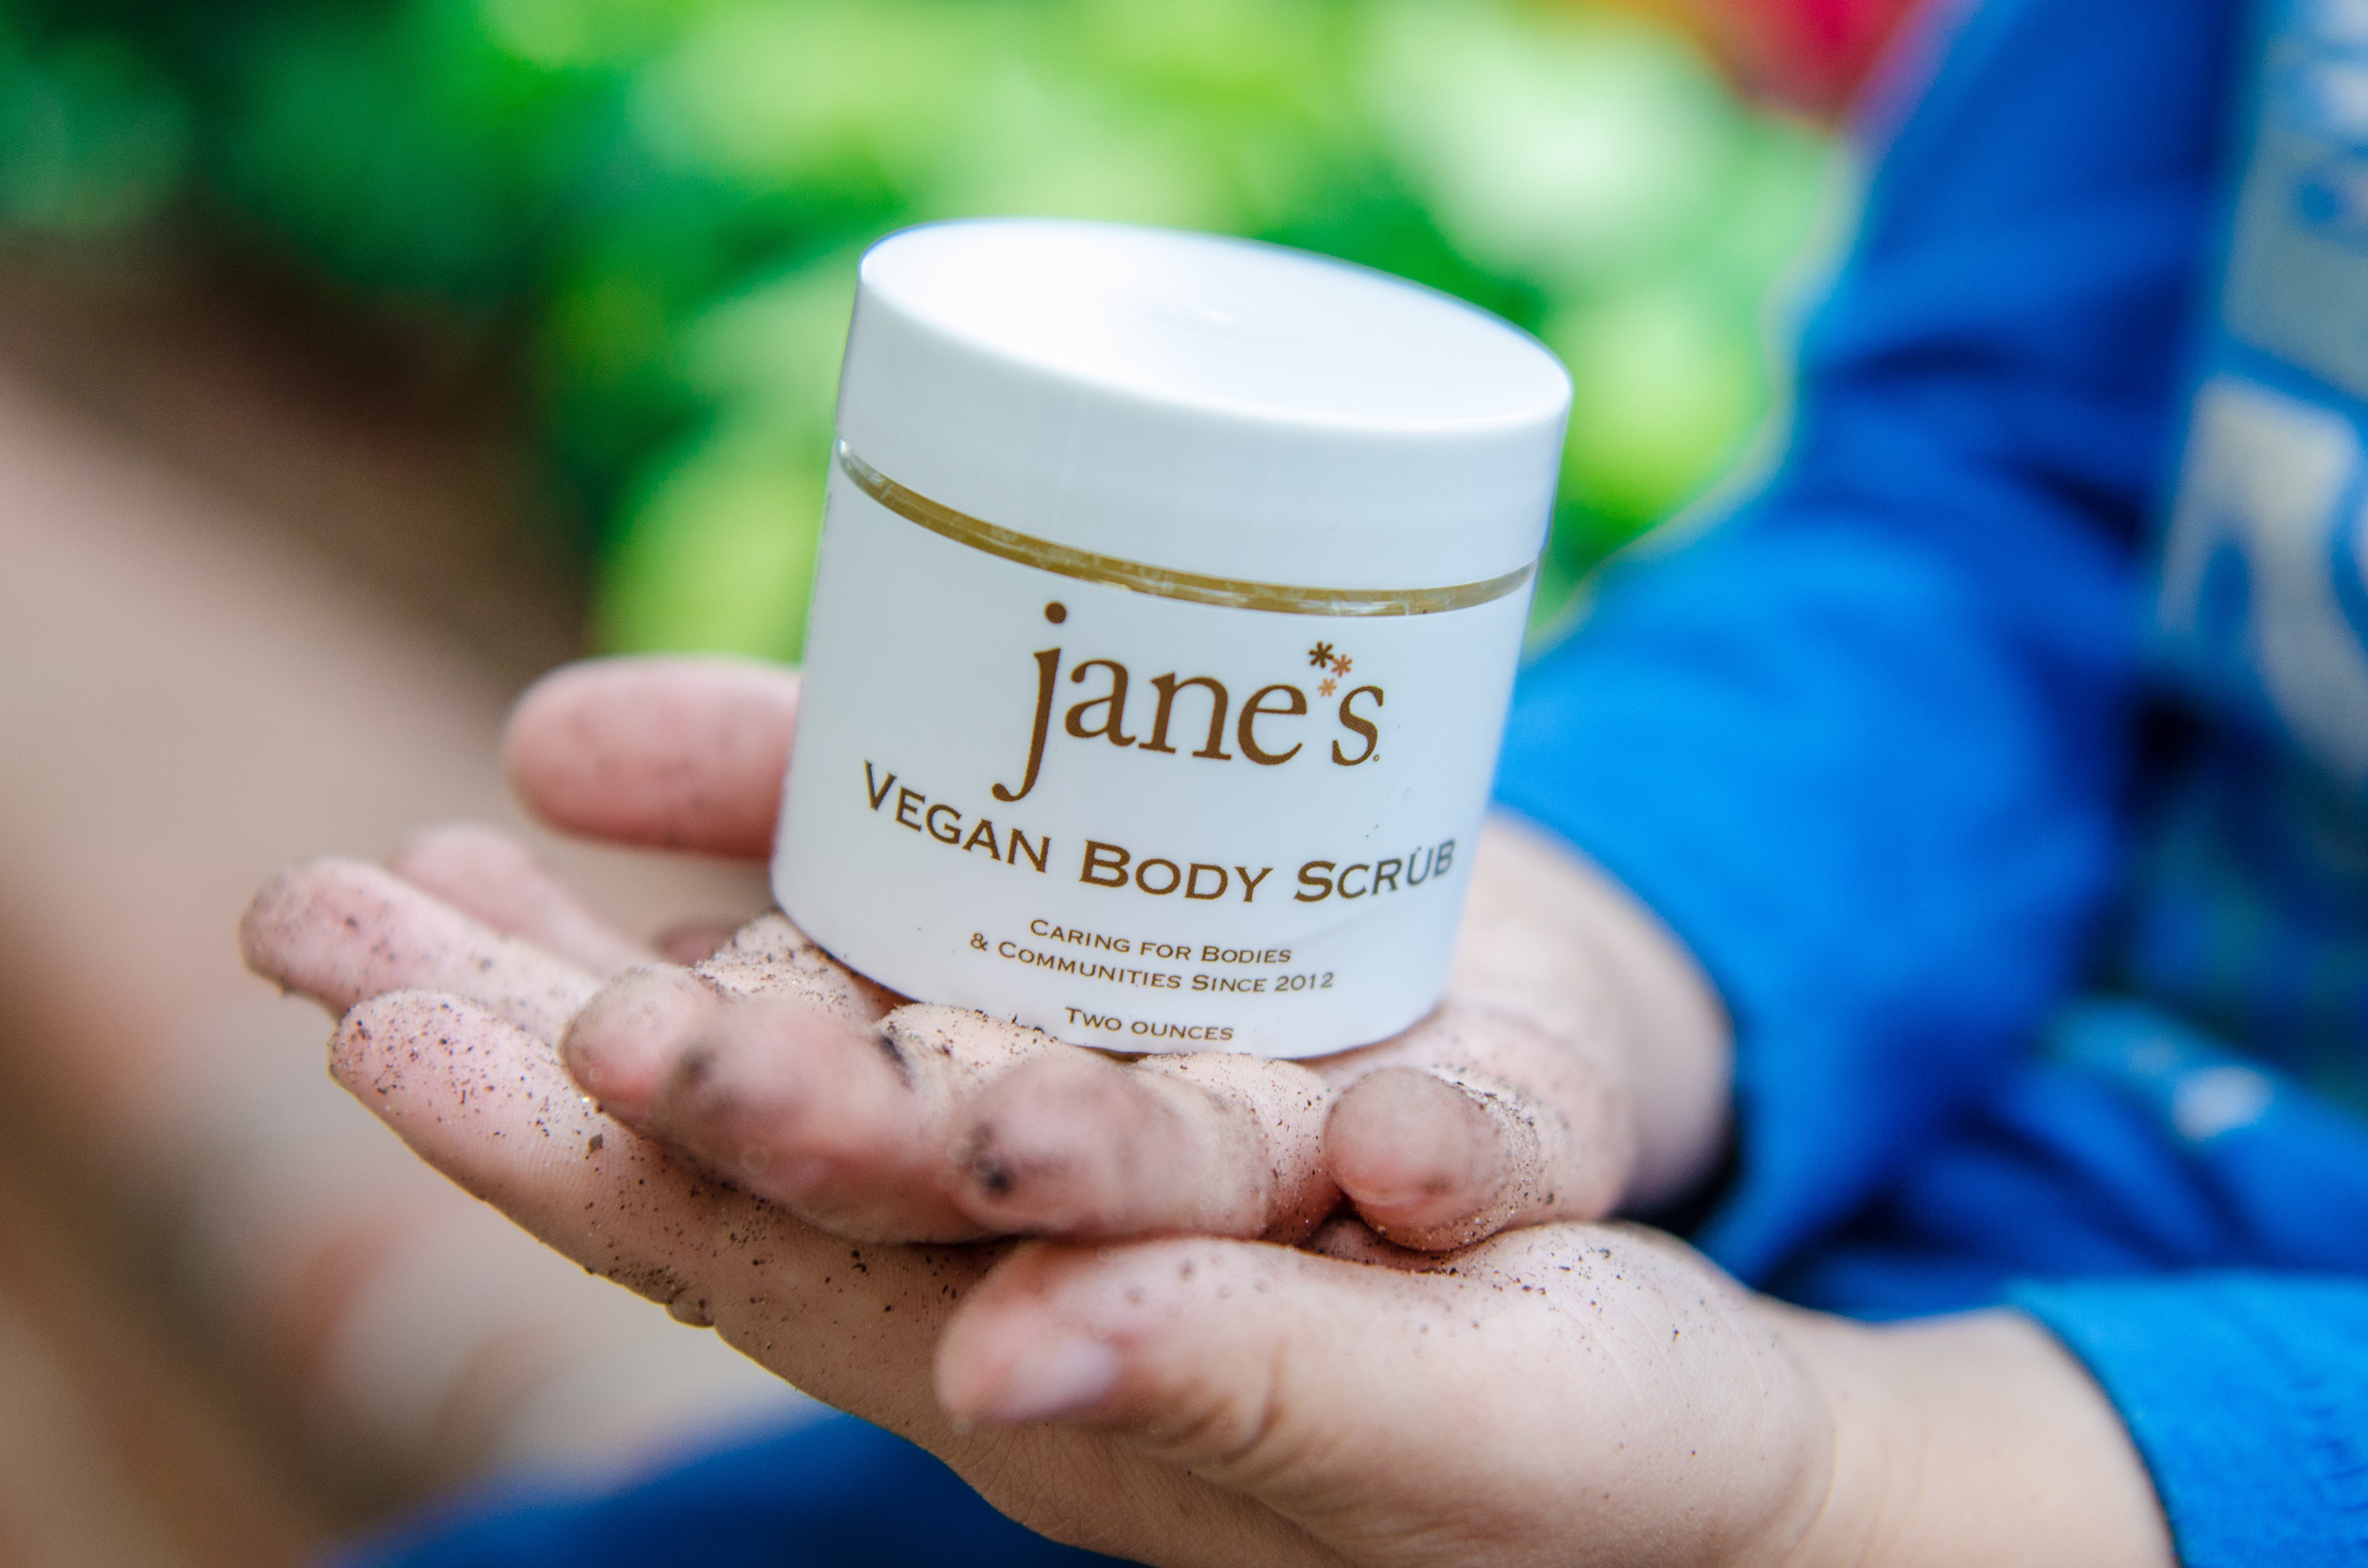 jane's body scrub LLC